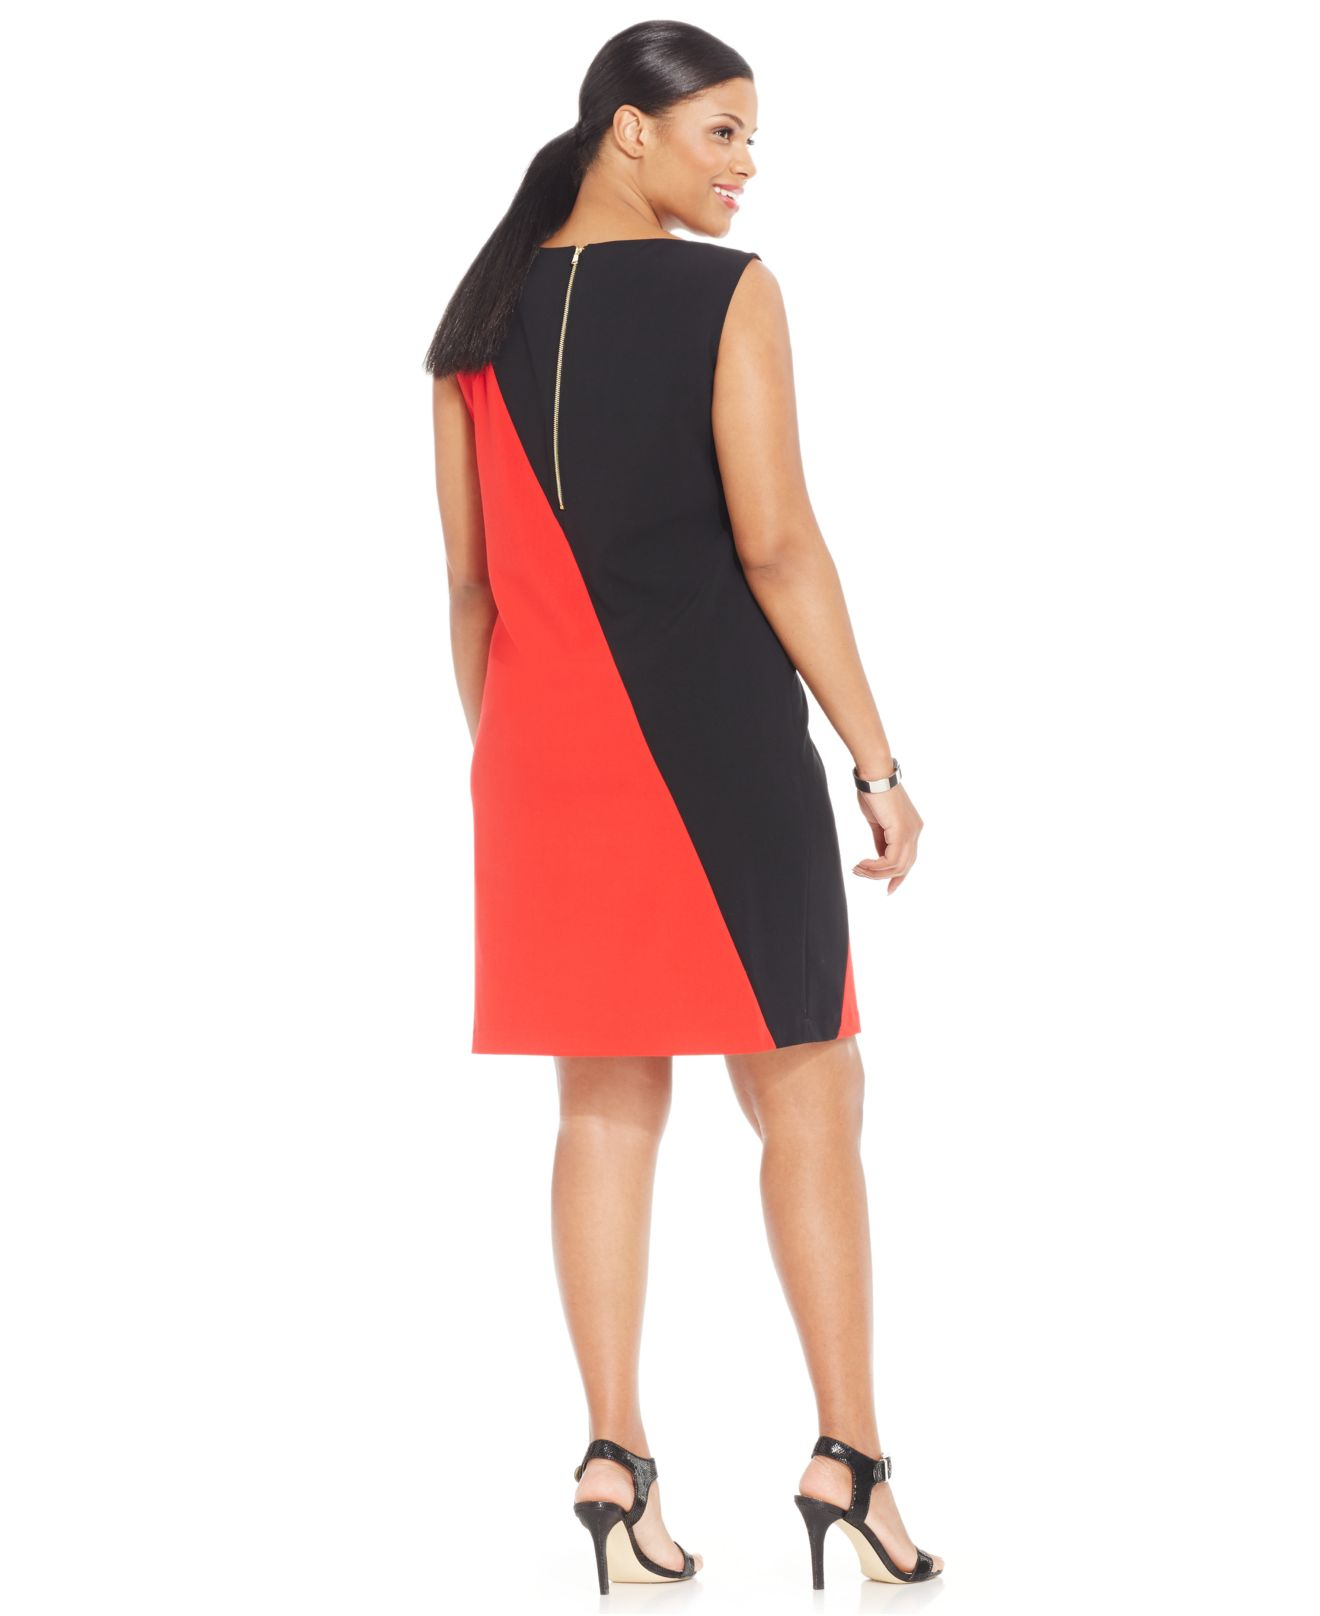 50f5ceaa Nine West Plus Size Sleeveless Colorblock Sheath Dress in Red - Lyst